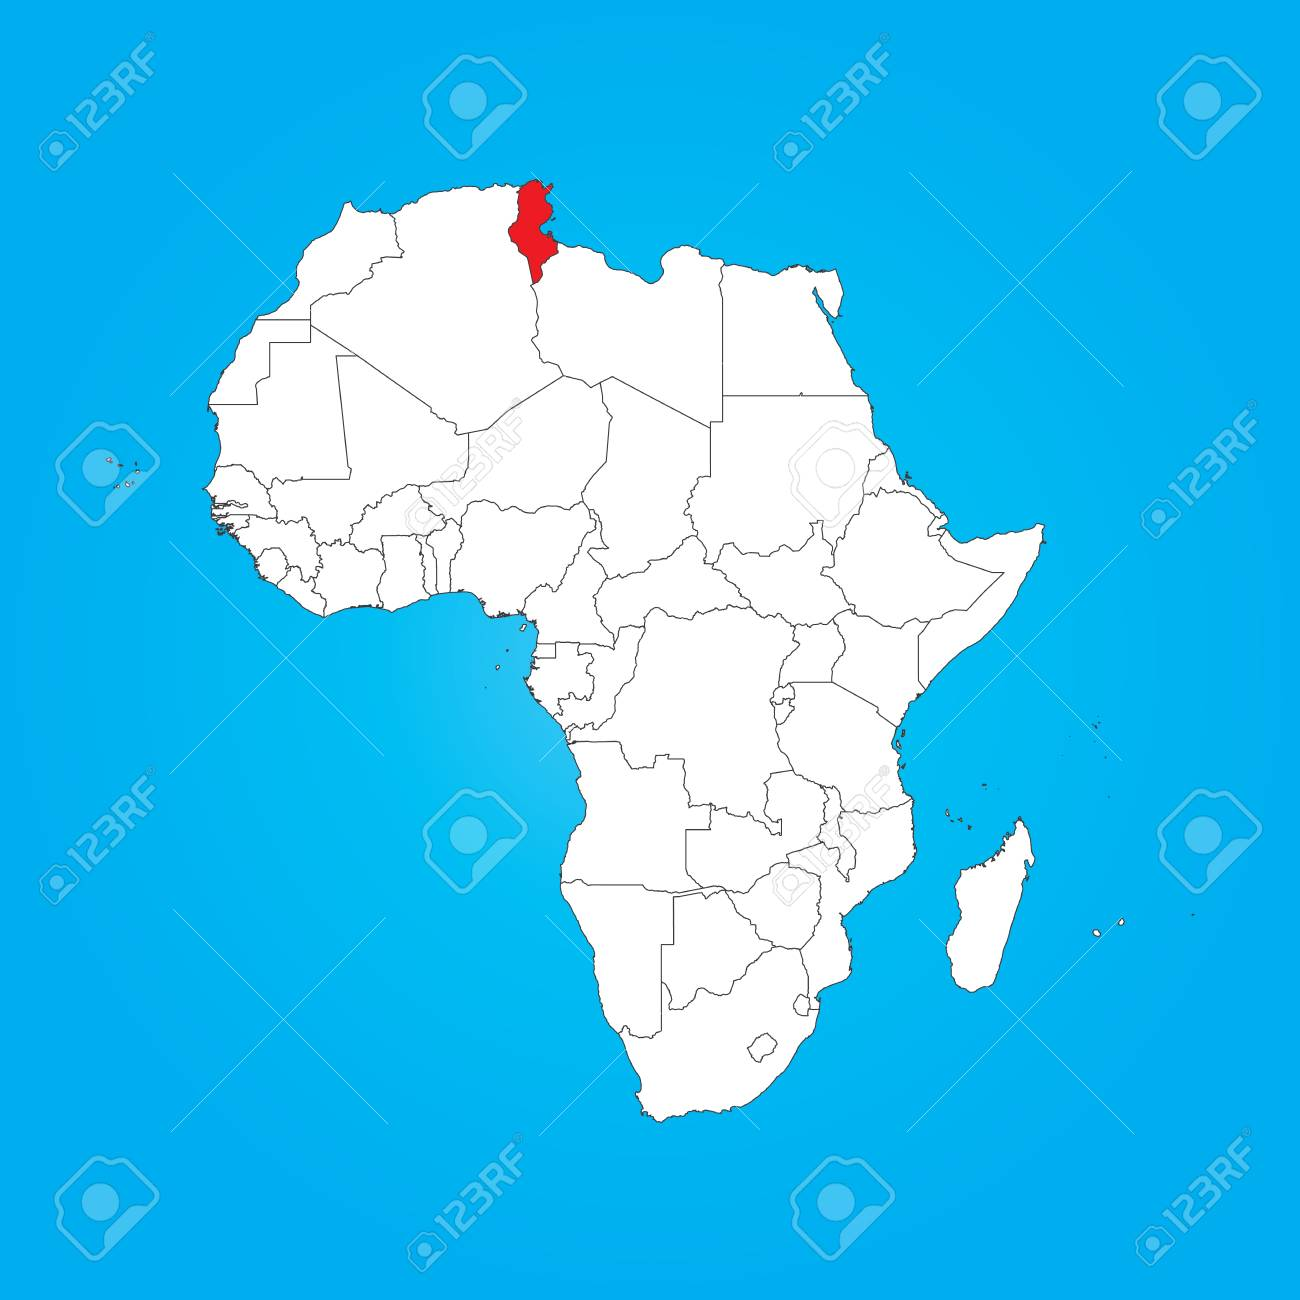 A Map Of Africa With A Selected Country Of Tunisia Stock Photo ...